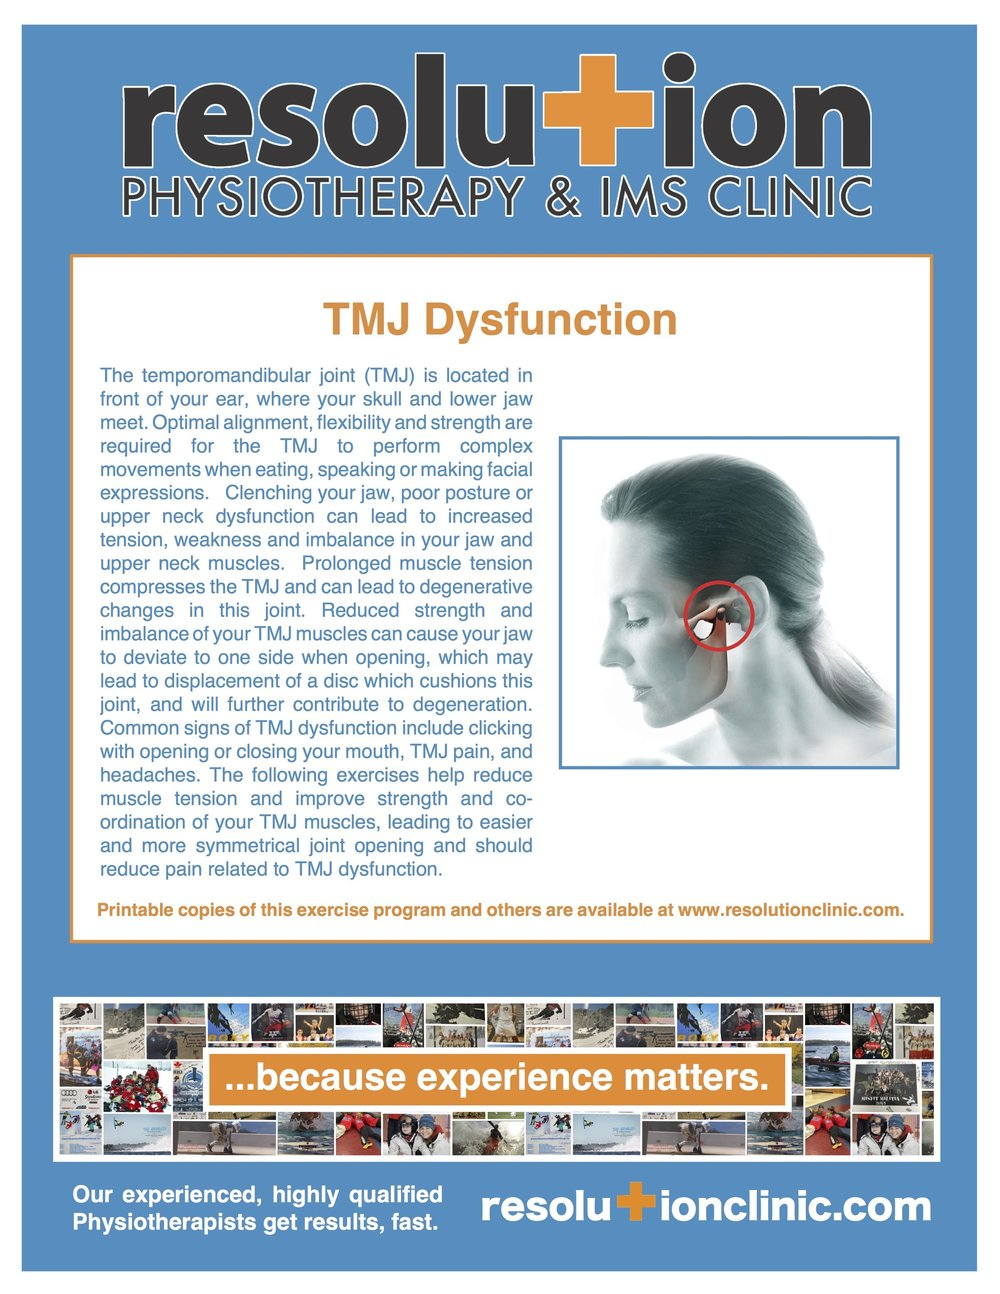 tmj physiotherapy barrie.jpg